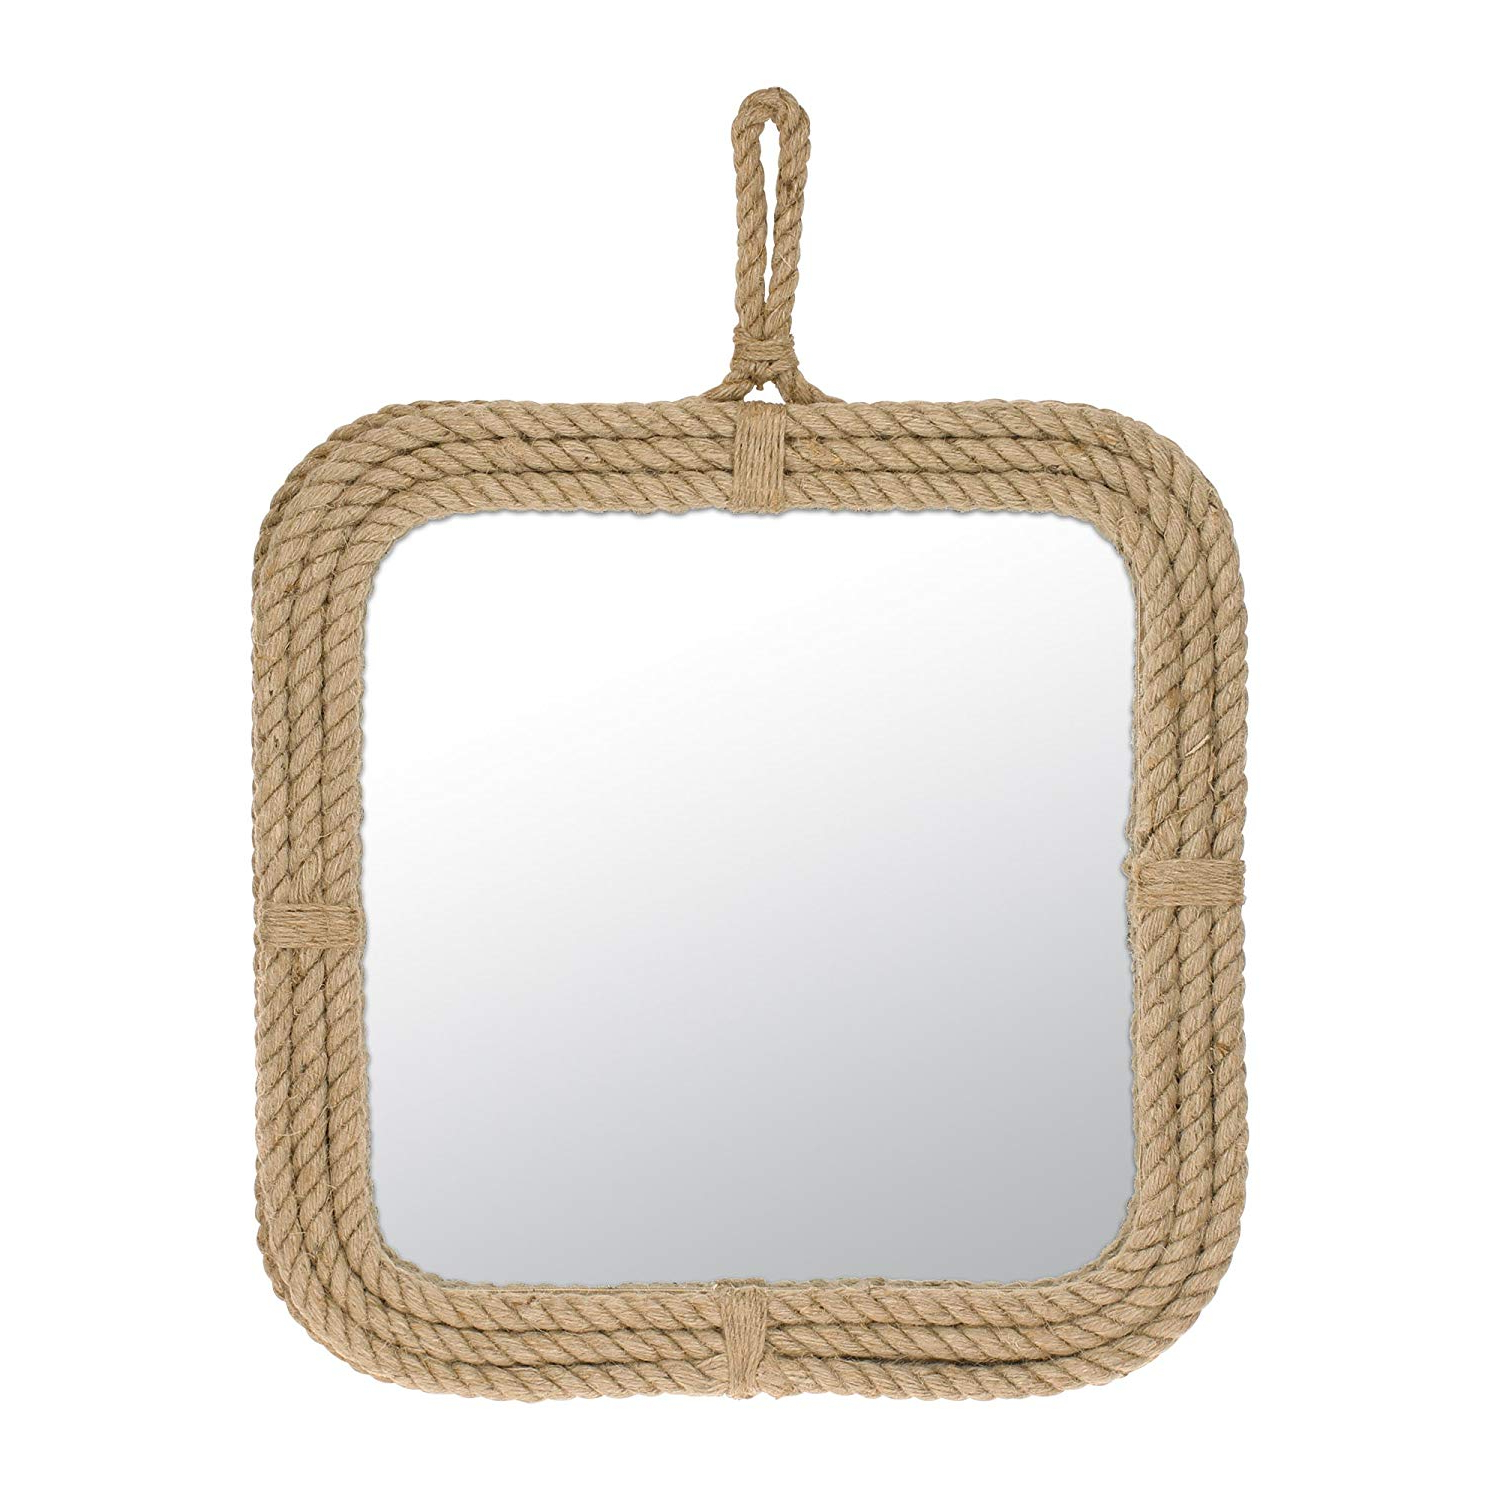 Stonebriar Small Square Rope Mirror For Wall, Light Weight, Rustic Decoration Inside Newest Lightweight Wall Mirrors (View 6 of 20)